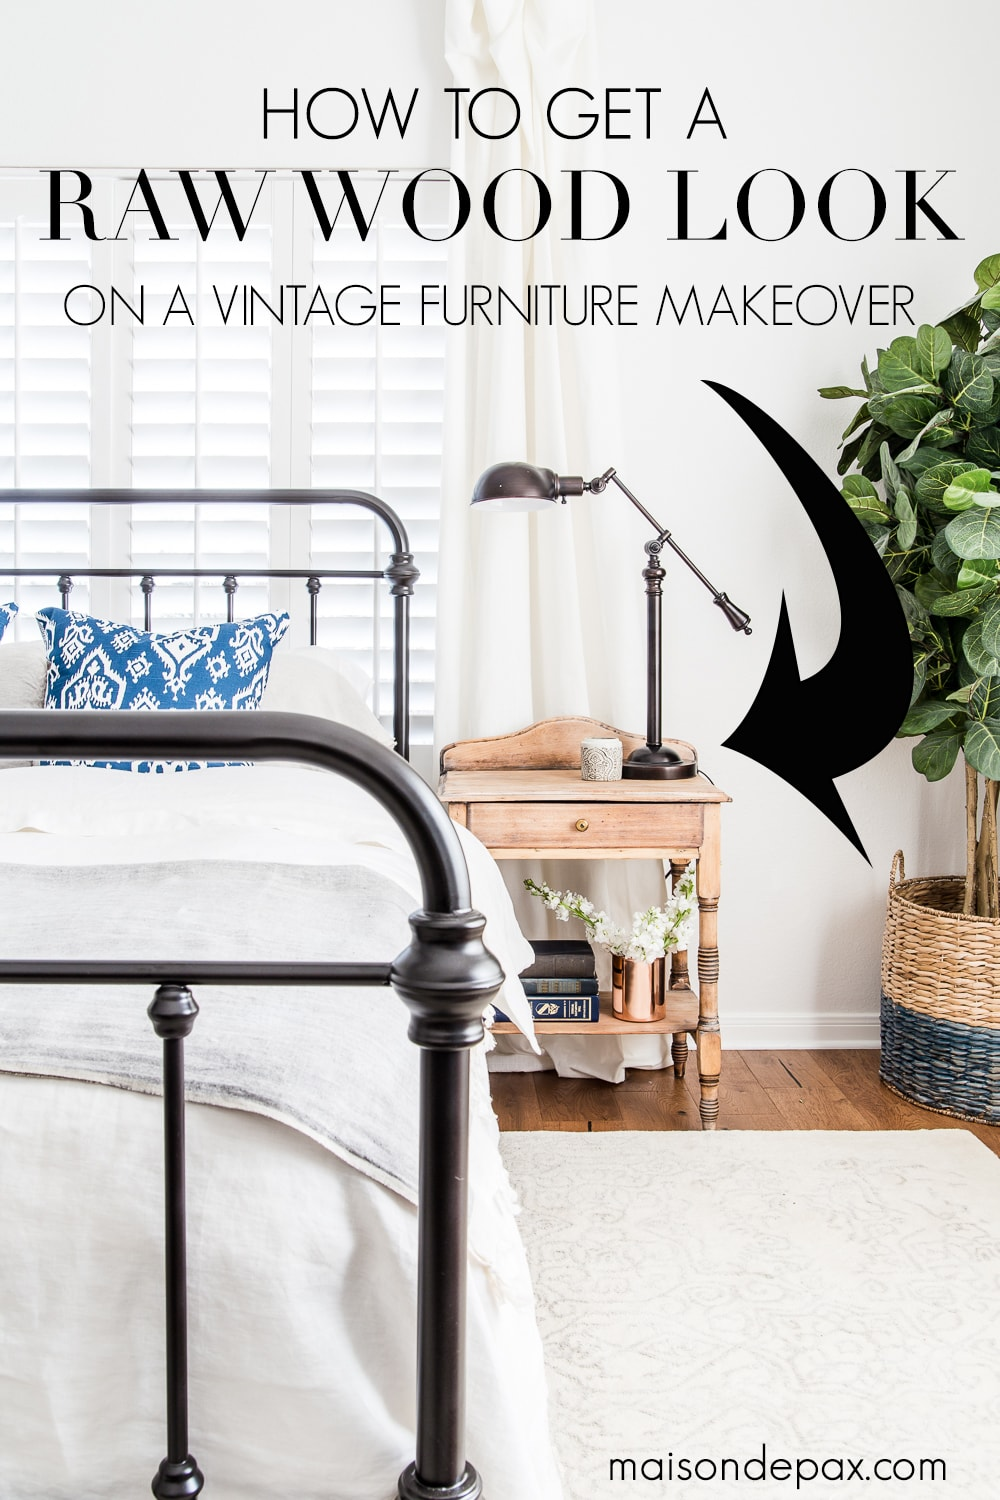 Trying to update your vintage, antique, or dated furniture?  Find out how to get a raw wood look for a fresh, modern vibe.  Learn how to do this rustic modern furniture makeover in just three easy steps! #diyfurnituremakeover #furnituremakeover #rawwood #naturalwood #waxfinish #diyproject #rusticmodern #vintagemakeover #naturalwoodfinish #rawwoodfinish #rawwoodlook